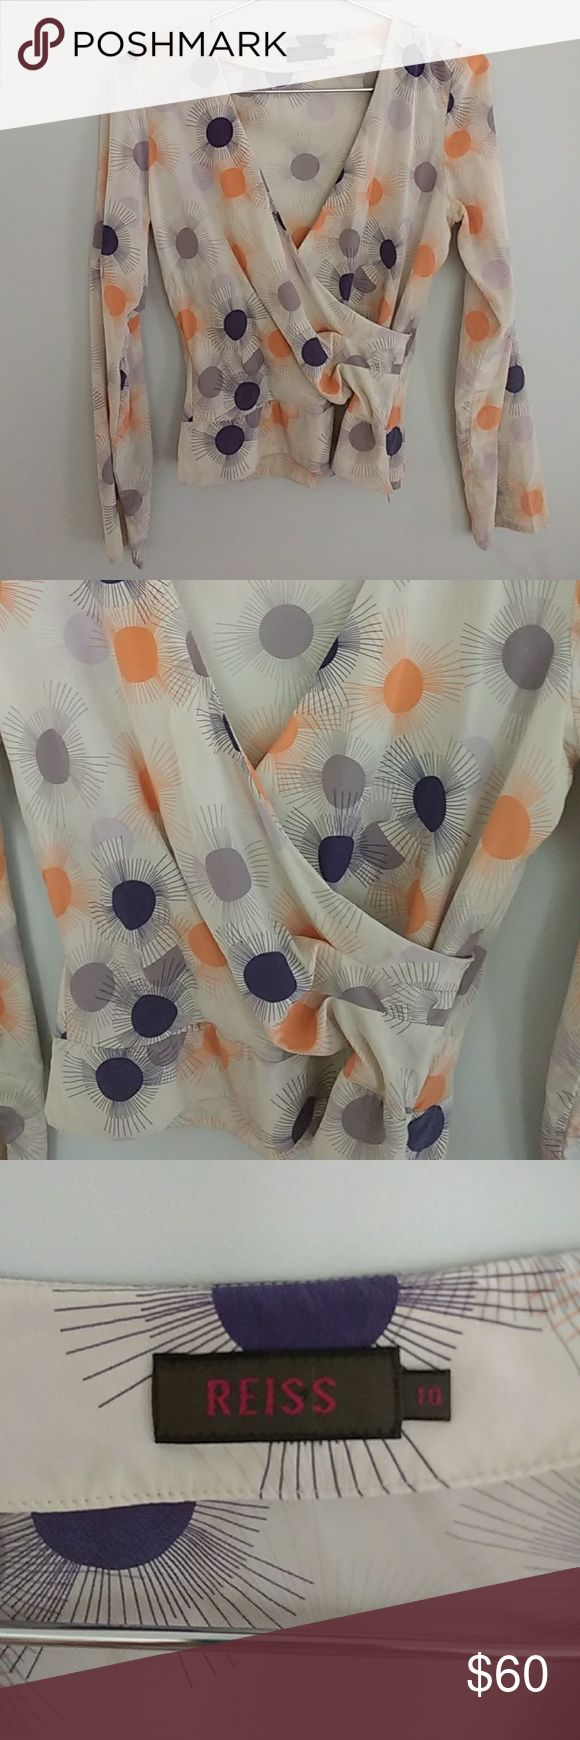 Reiss, silk blouse Reiss, silk off white with navy, light and medium purple color and orange sherbet color sun  pattern, faux wrap leads to side zipper, sleeves fall just past wrist, fits like an 8. Reiss Tops Blouses